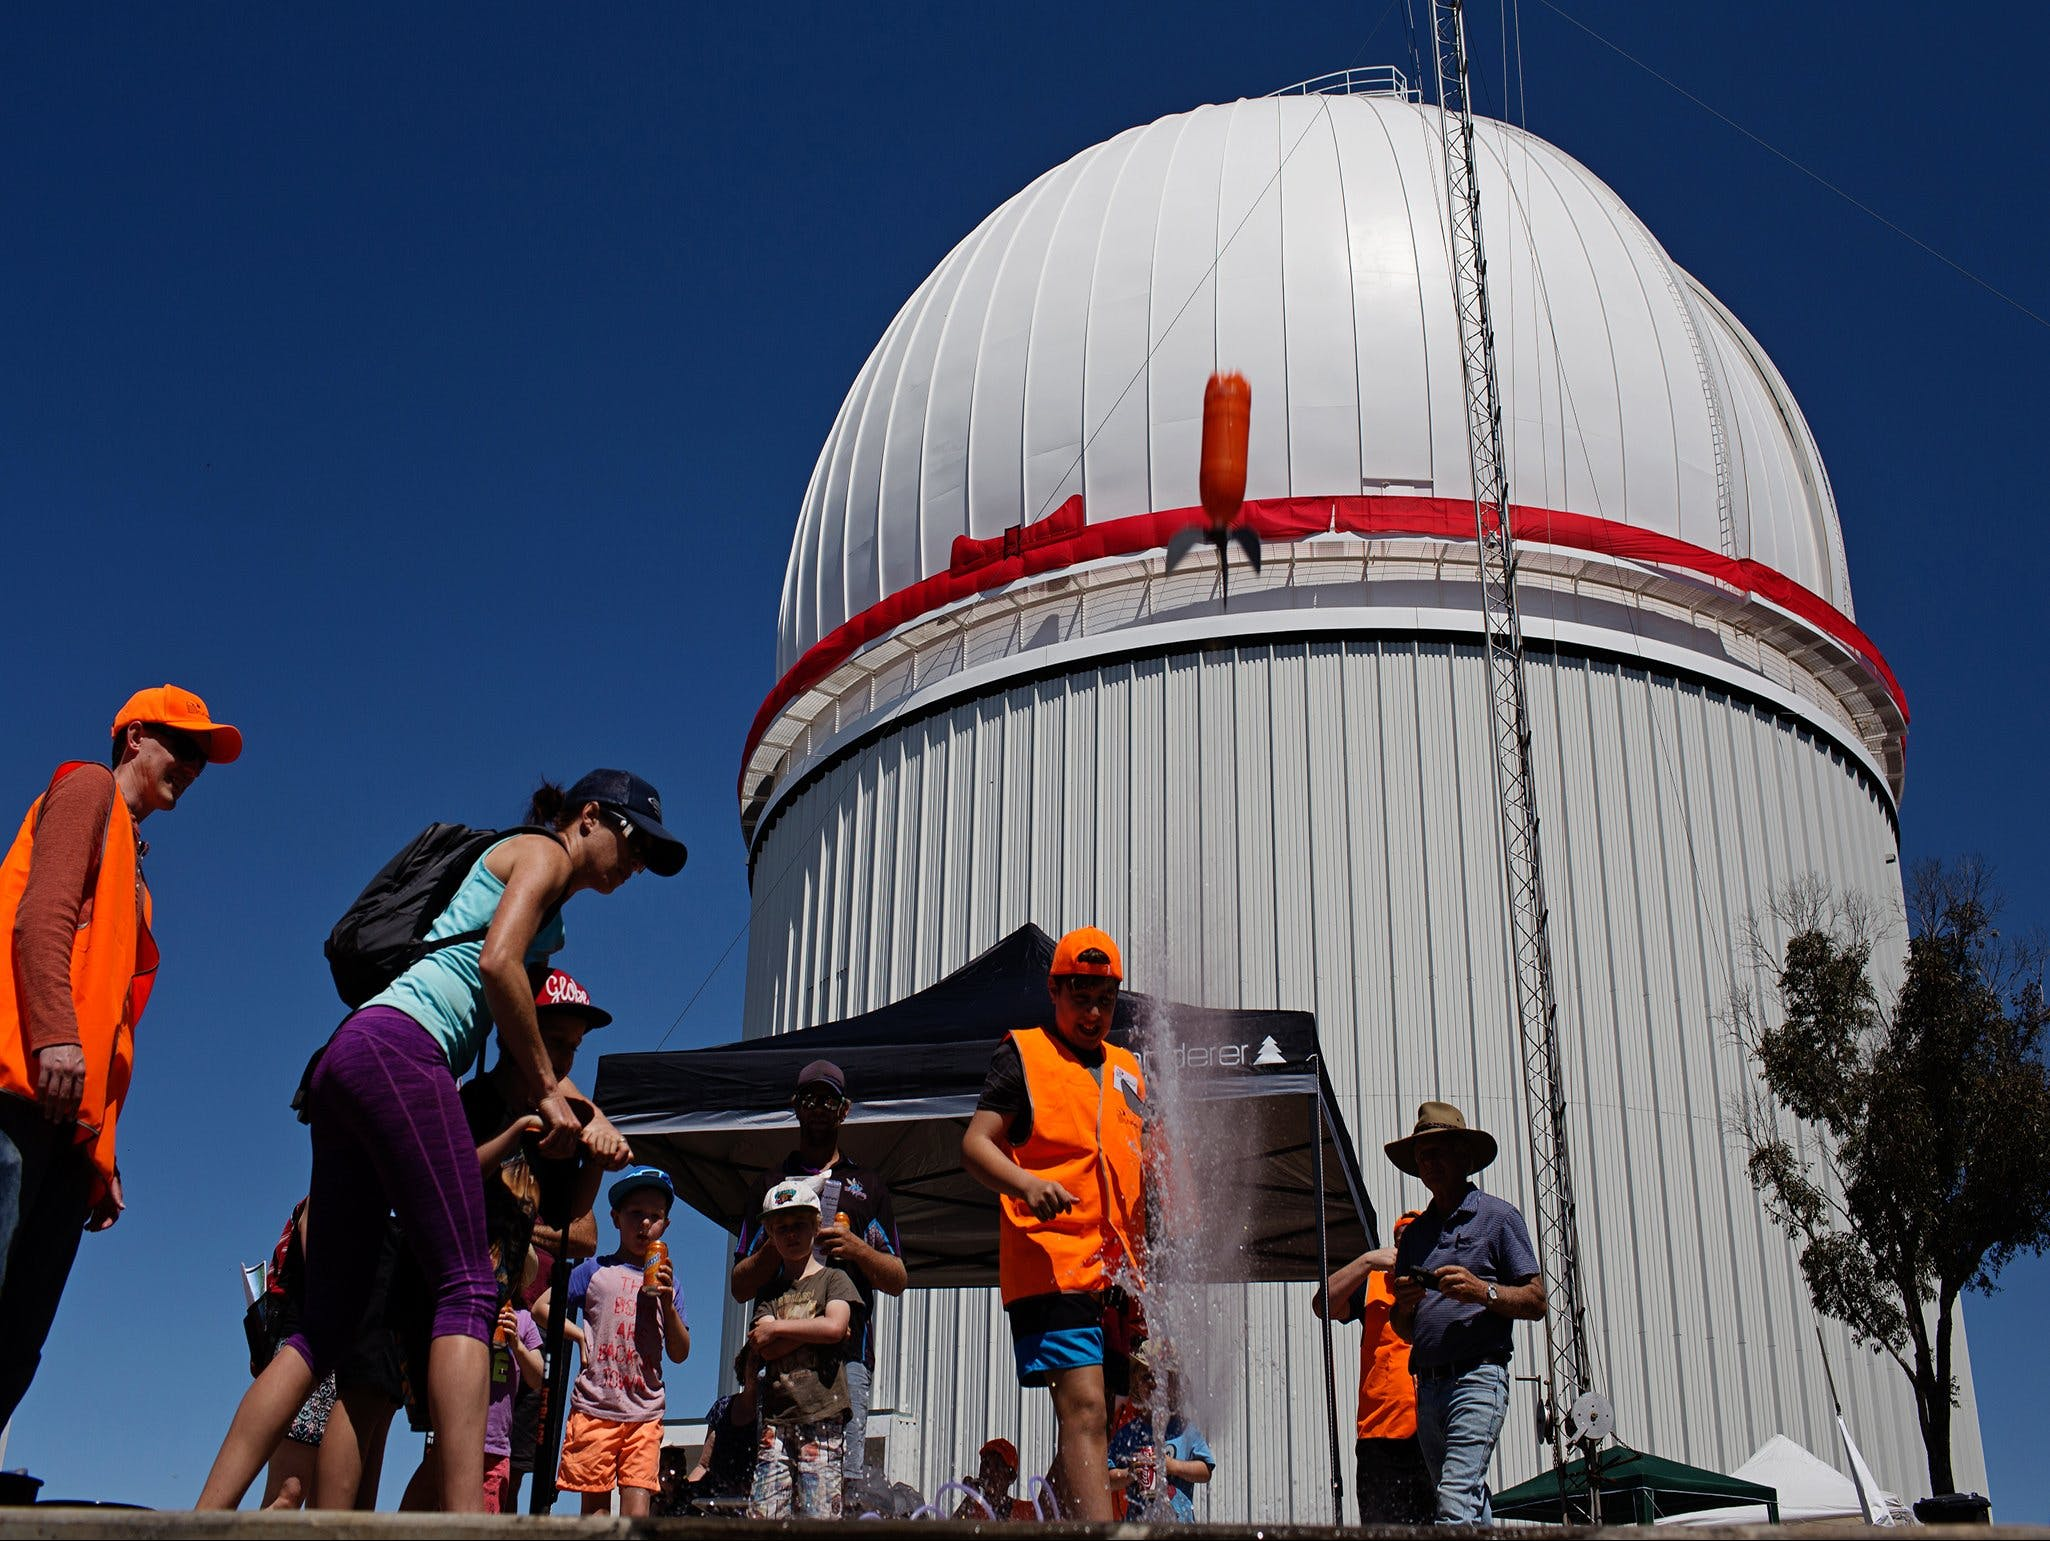 Siding Spring Observatory Open Day - Cancelled due to COVID 19 - Lightning Ridge Tourism